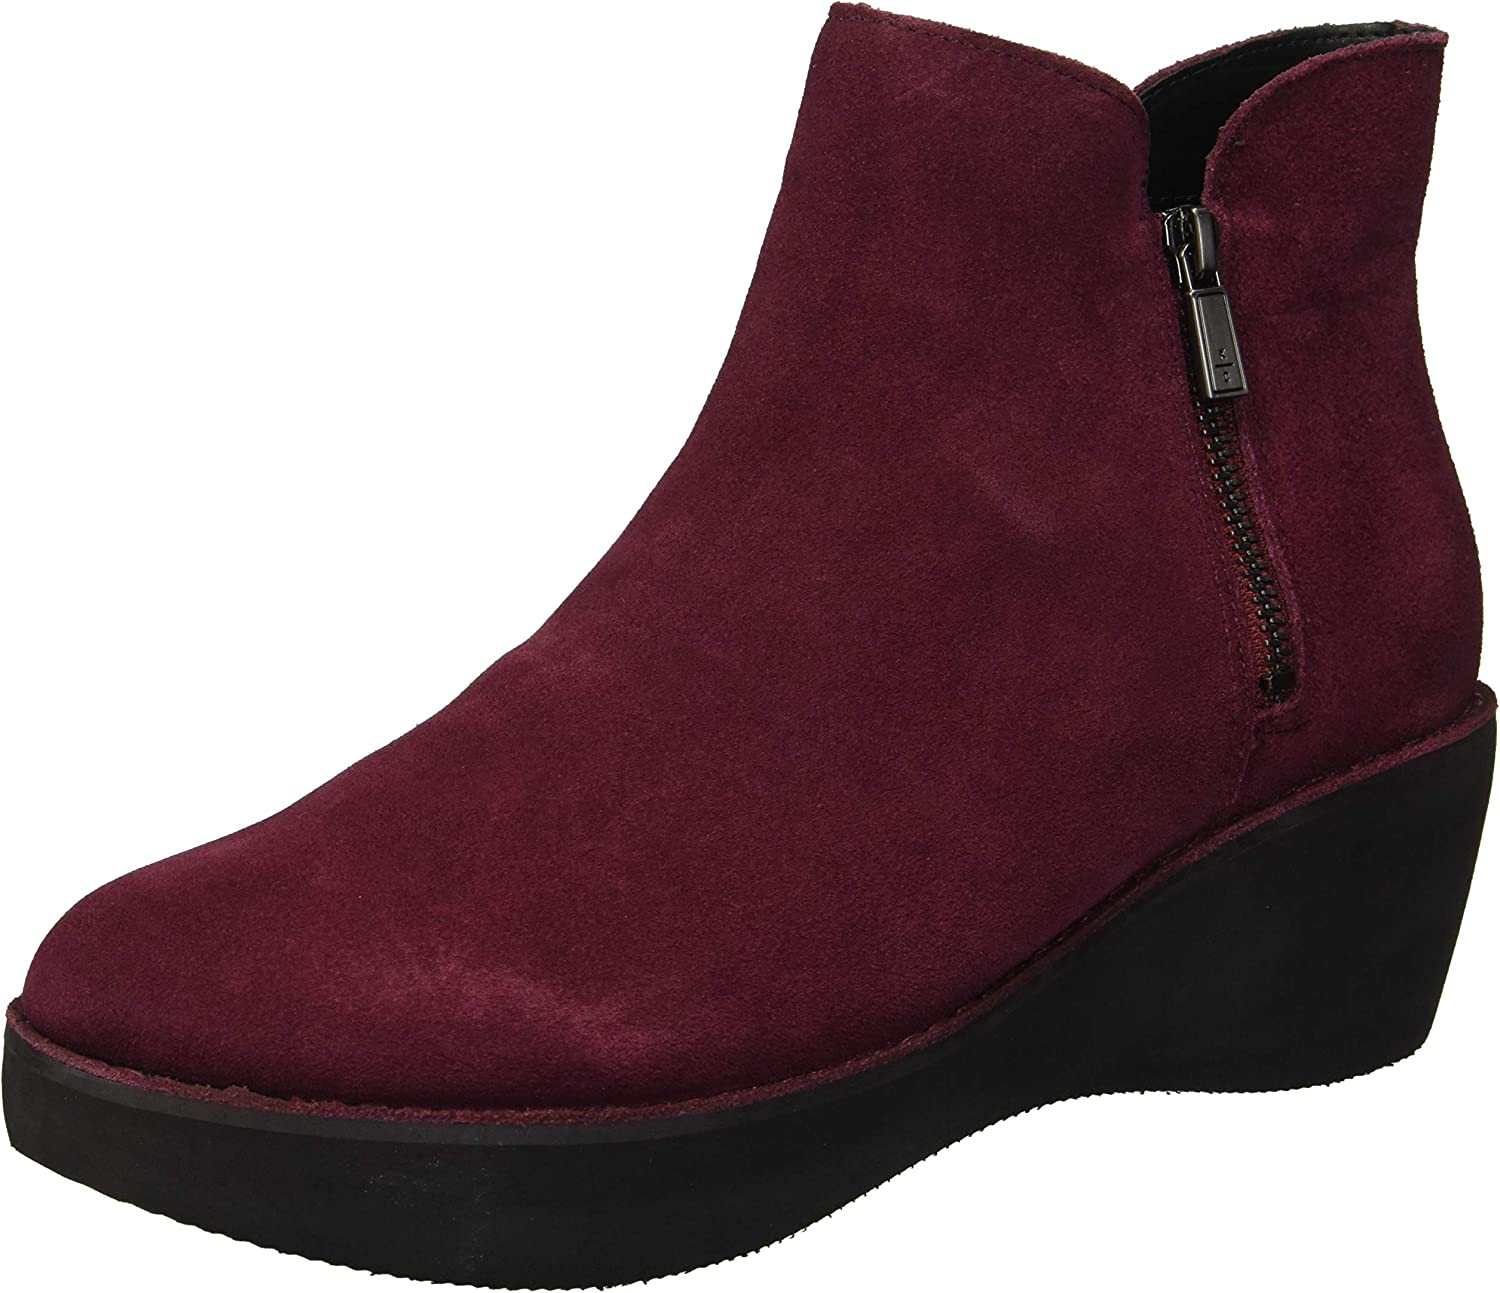 Kenneth Cole REACTION Womens Prime Platform Bootie with Side Zip Ankle Boot